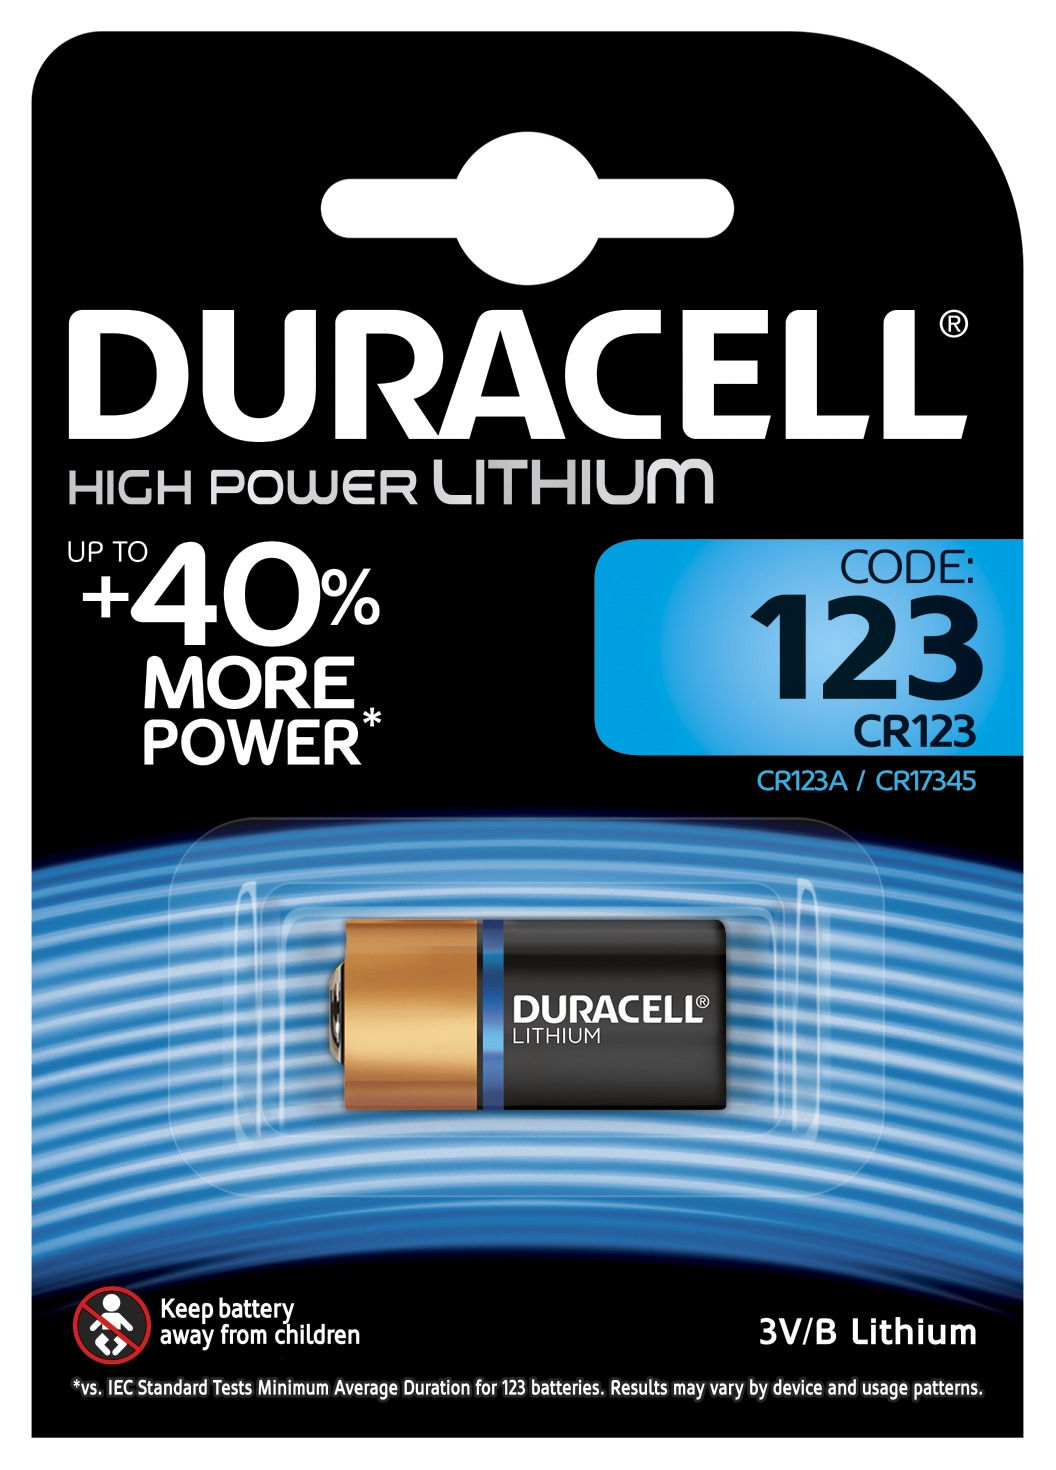 Duracell High Power Lithium 123 CR123A (1 pz)